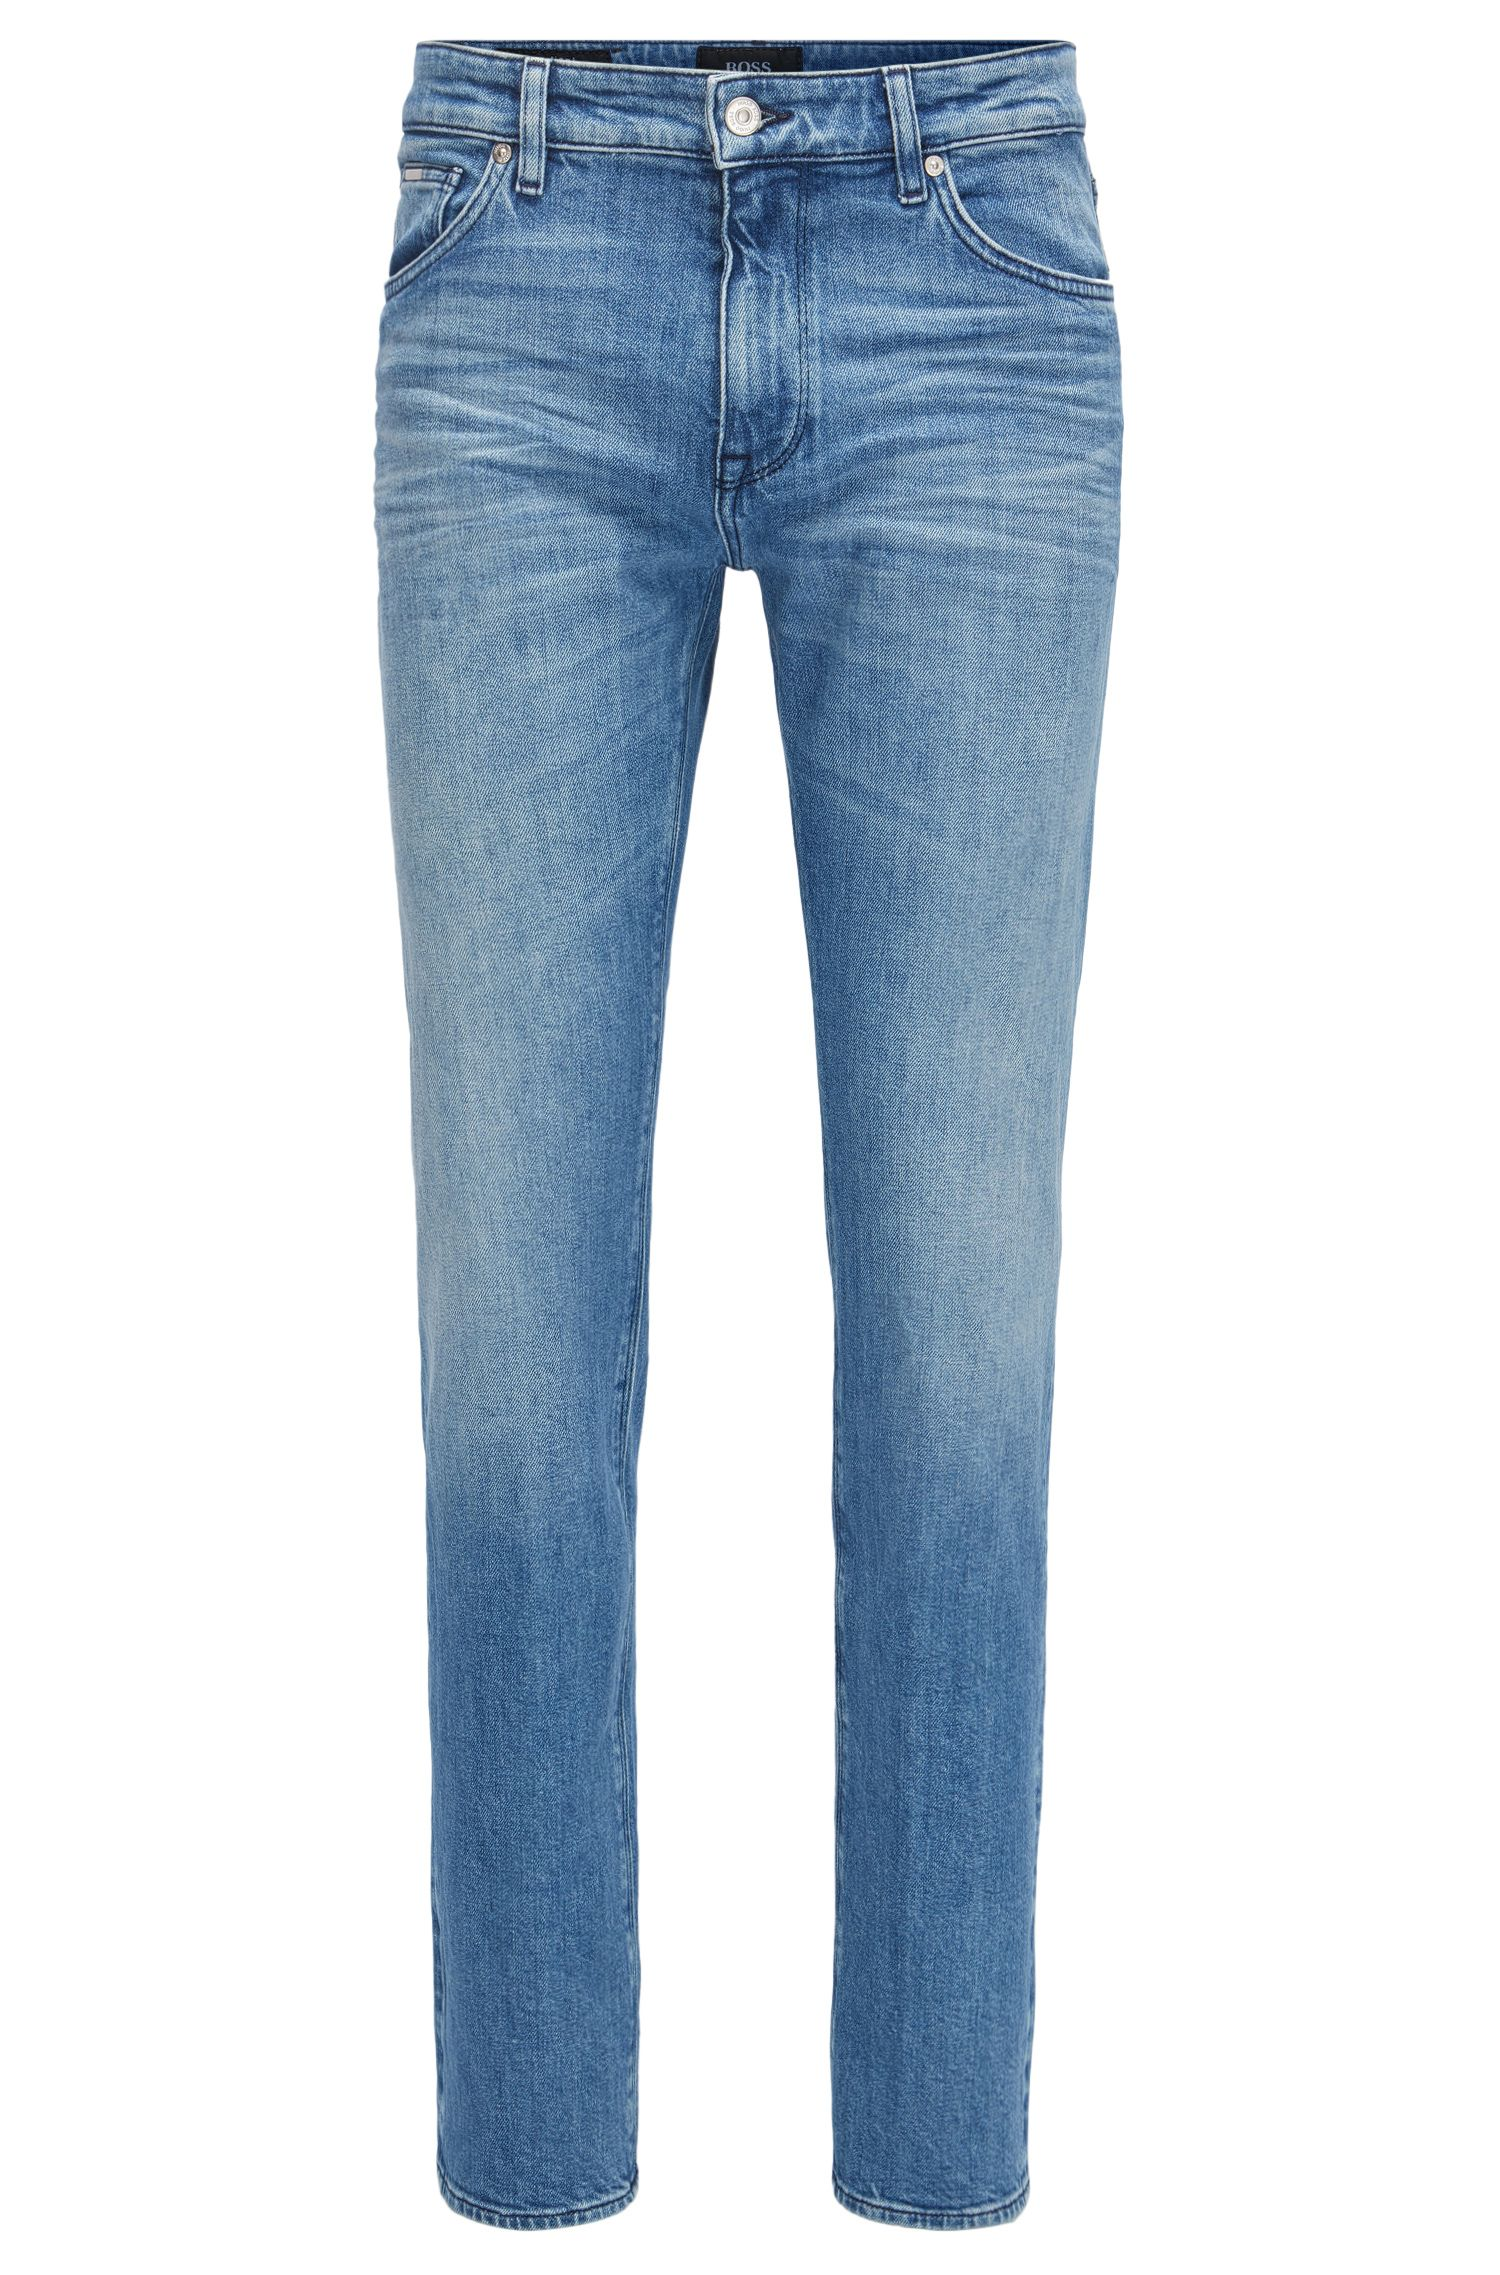 Jean Regular Fit en denim stretch bleu clair